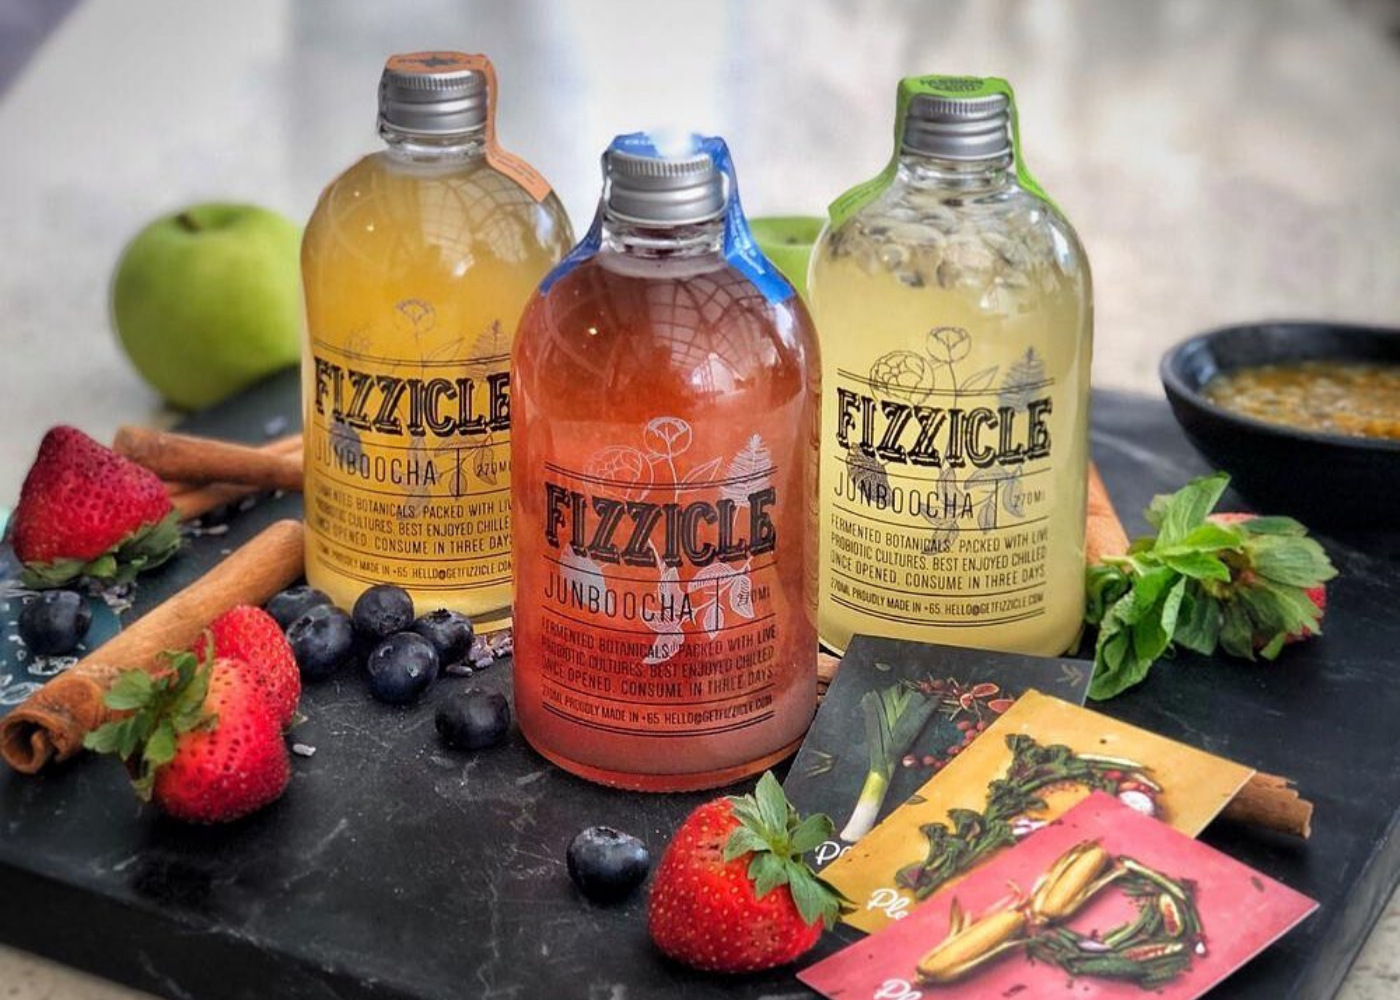 Kefir and kombucha in Singapore: Fizzicle